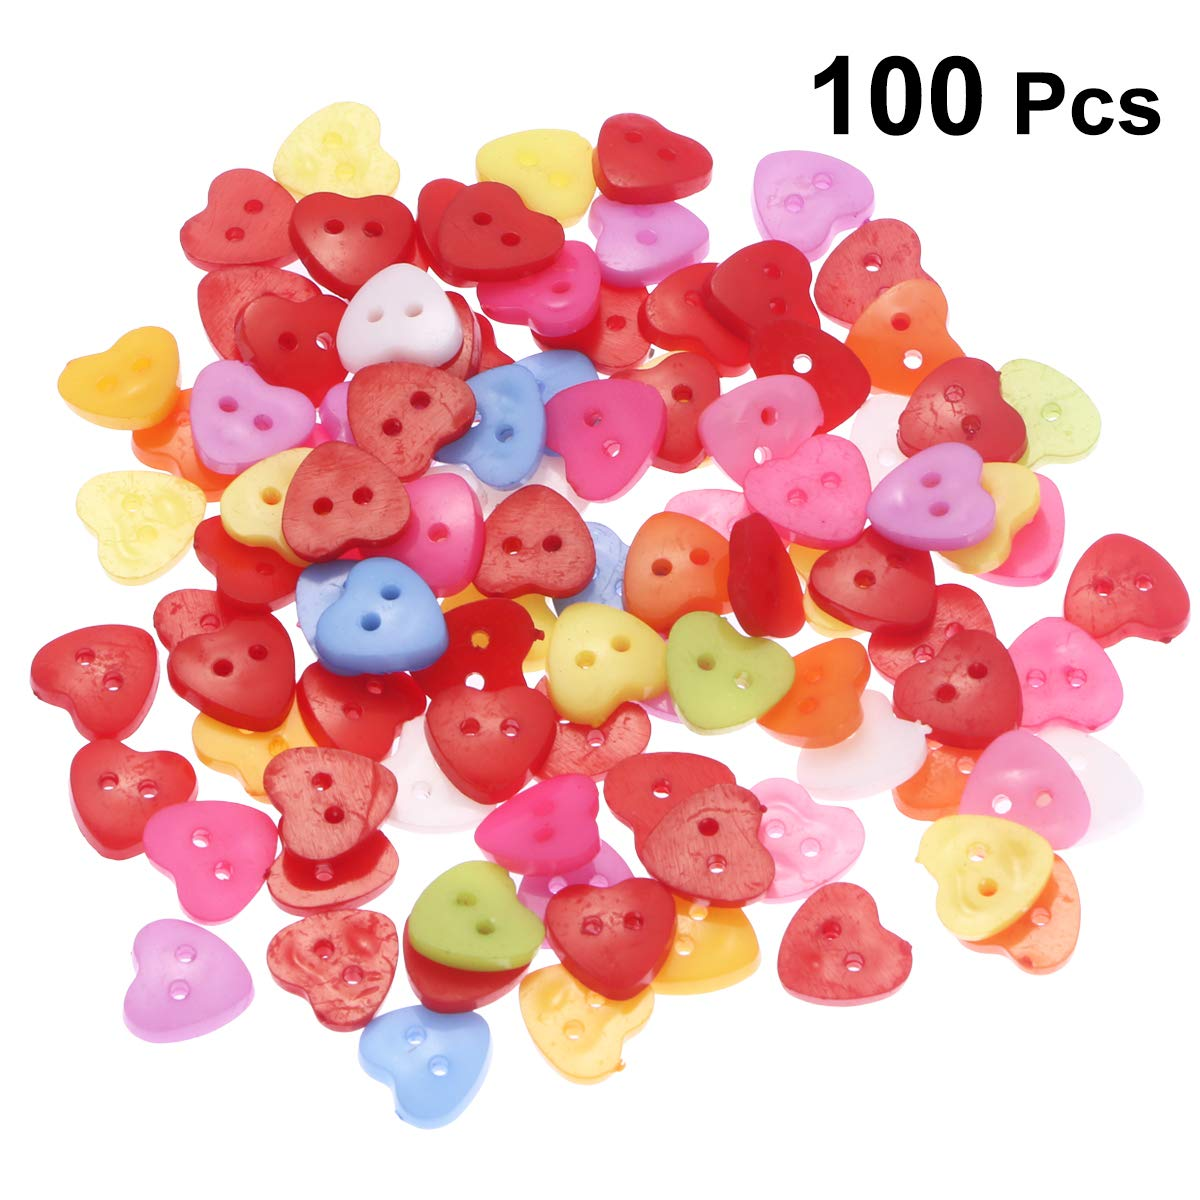 Tinksky 100pcs Heart Shaped Multicolor 2 Holes Resin Sewing Buttons for  Sewing Scrapbooking Knitting